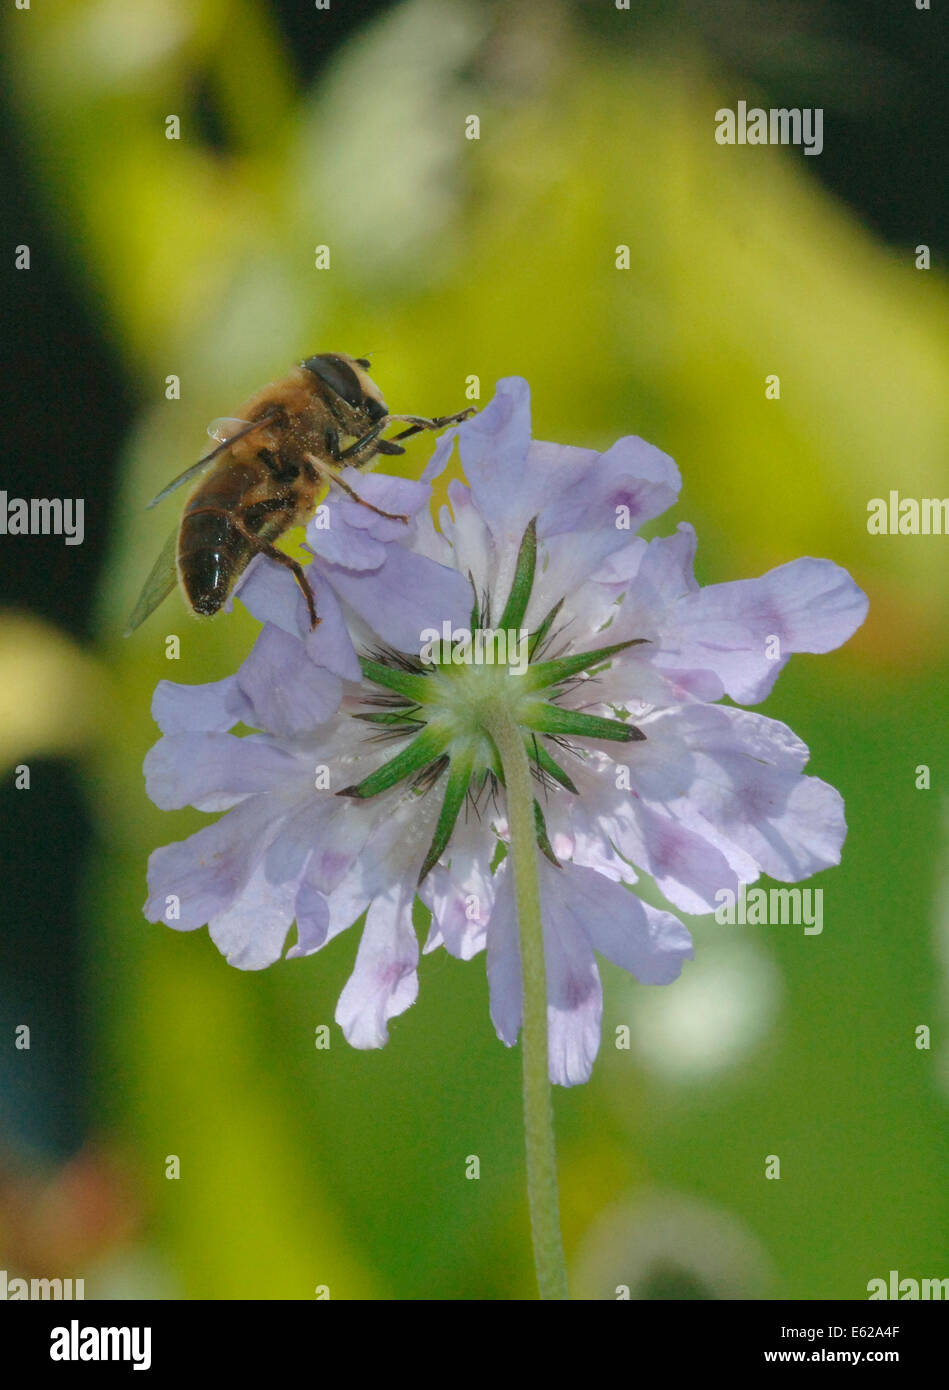 Drone-Fly (Eristalis tenax) On A Scabious Flower. - Stock Image